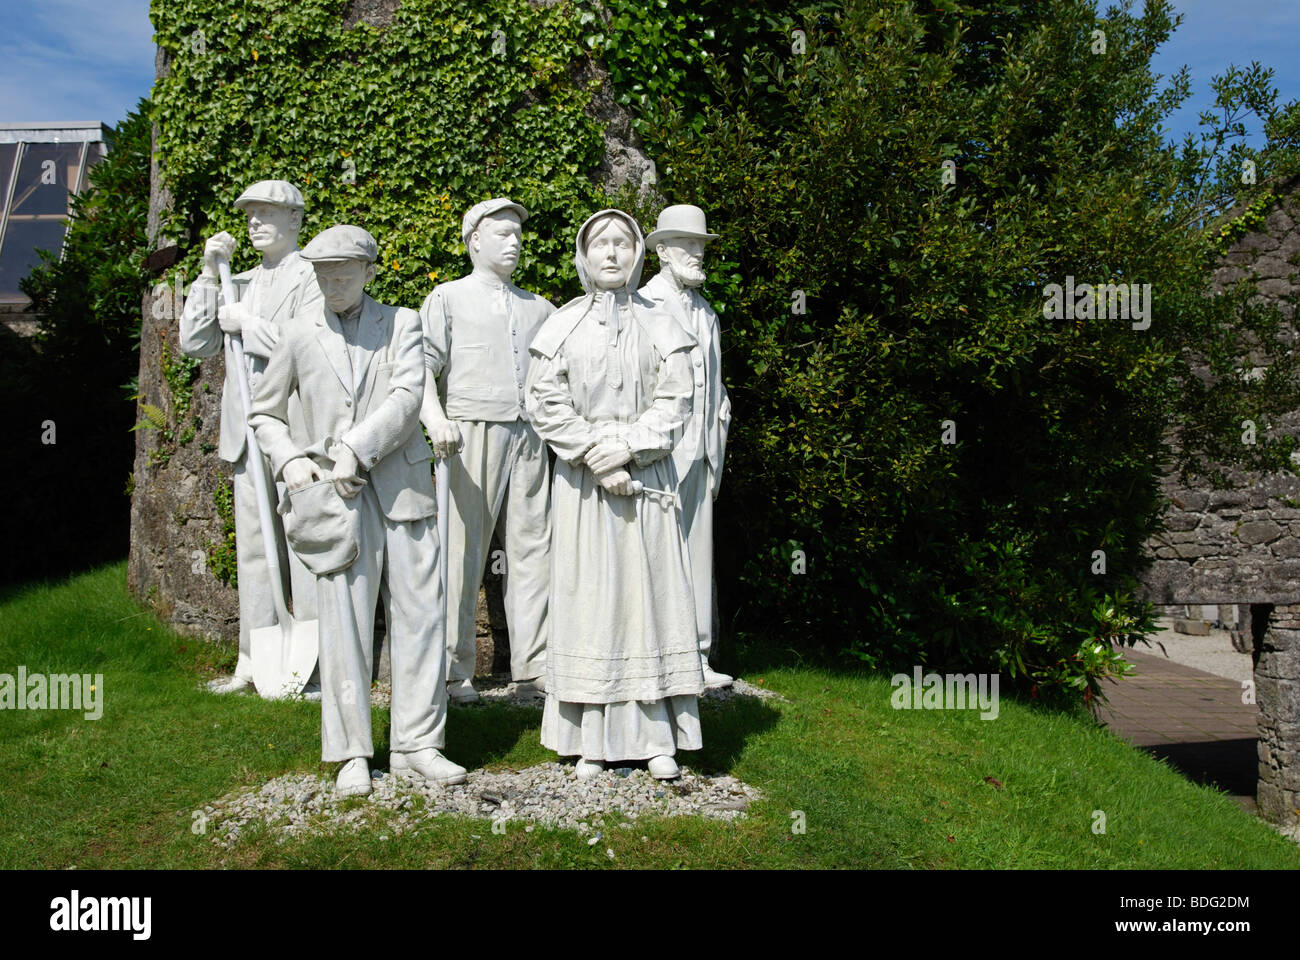 the monument to former workers at the ' English China Clay ' museum near st.Austell in cornwall, uk - Stock Image